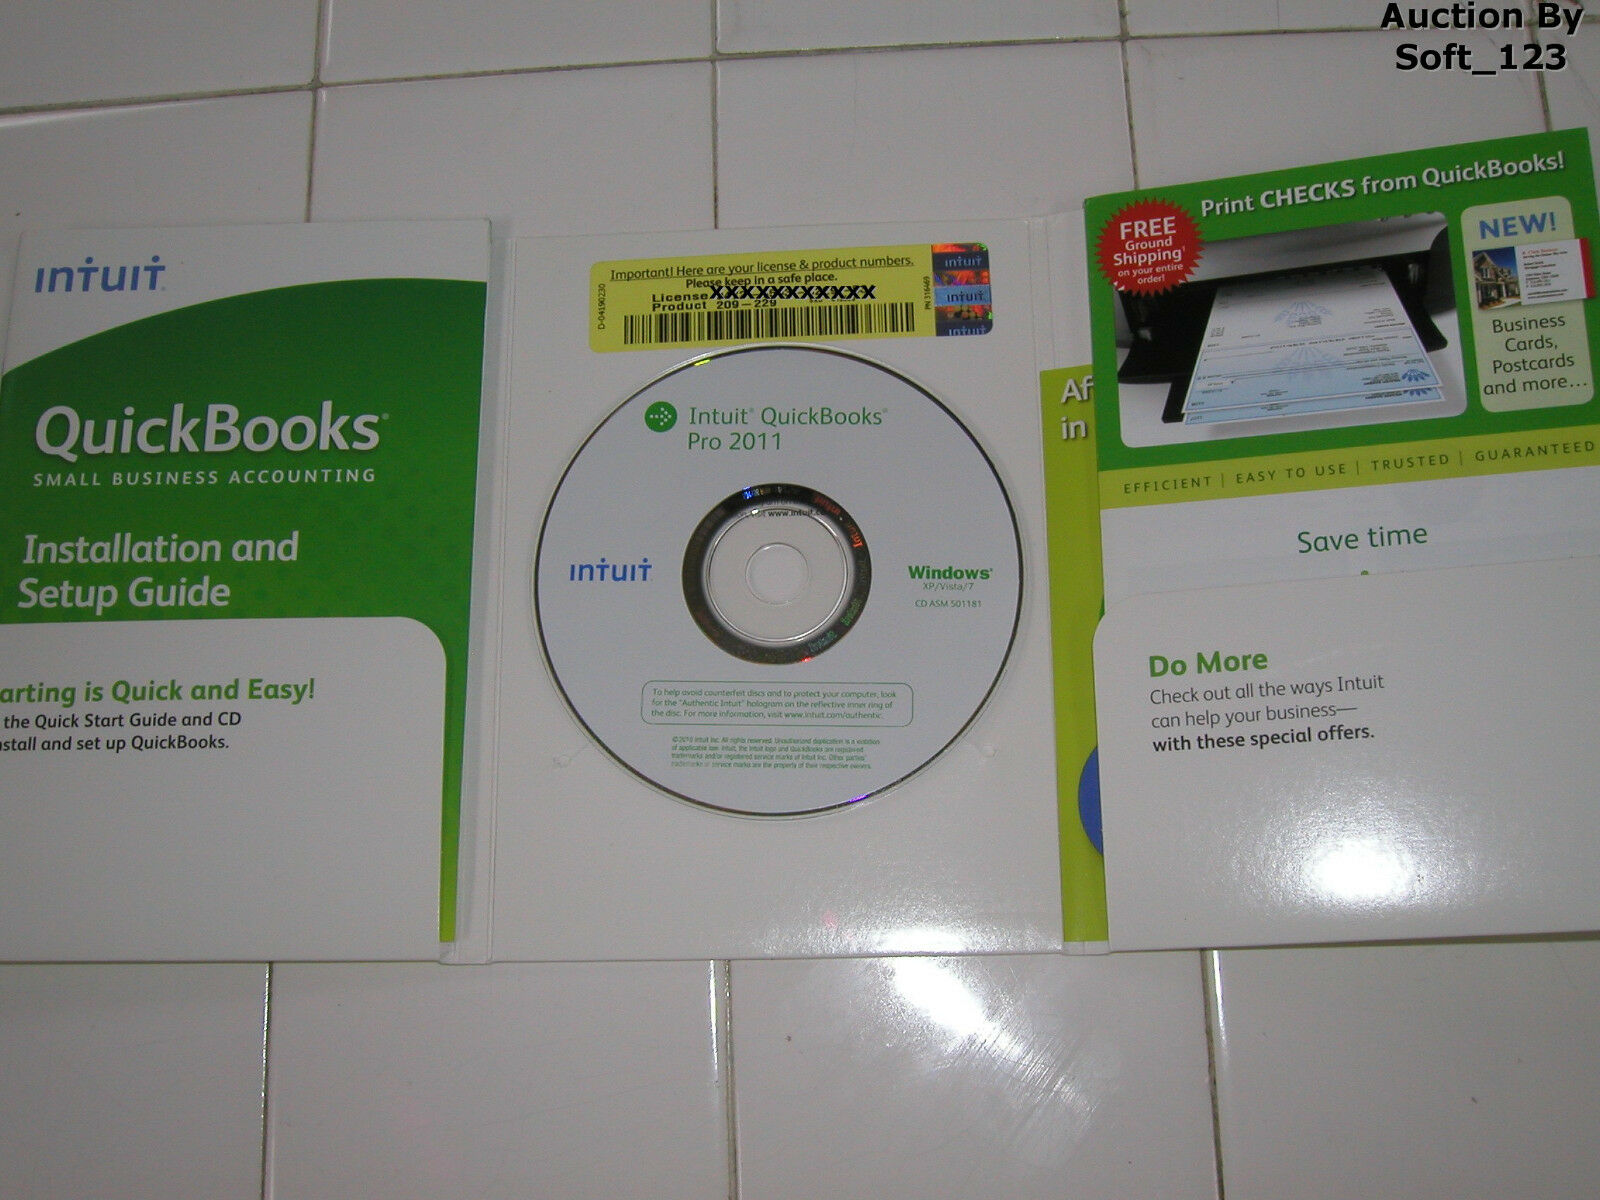 Intuit Quickbooks Pro 2015 For Windows Full Retail US Version *Brand New*